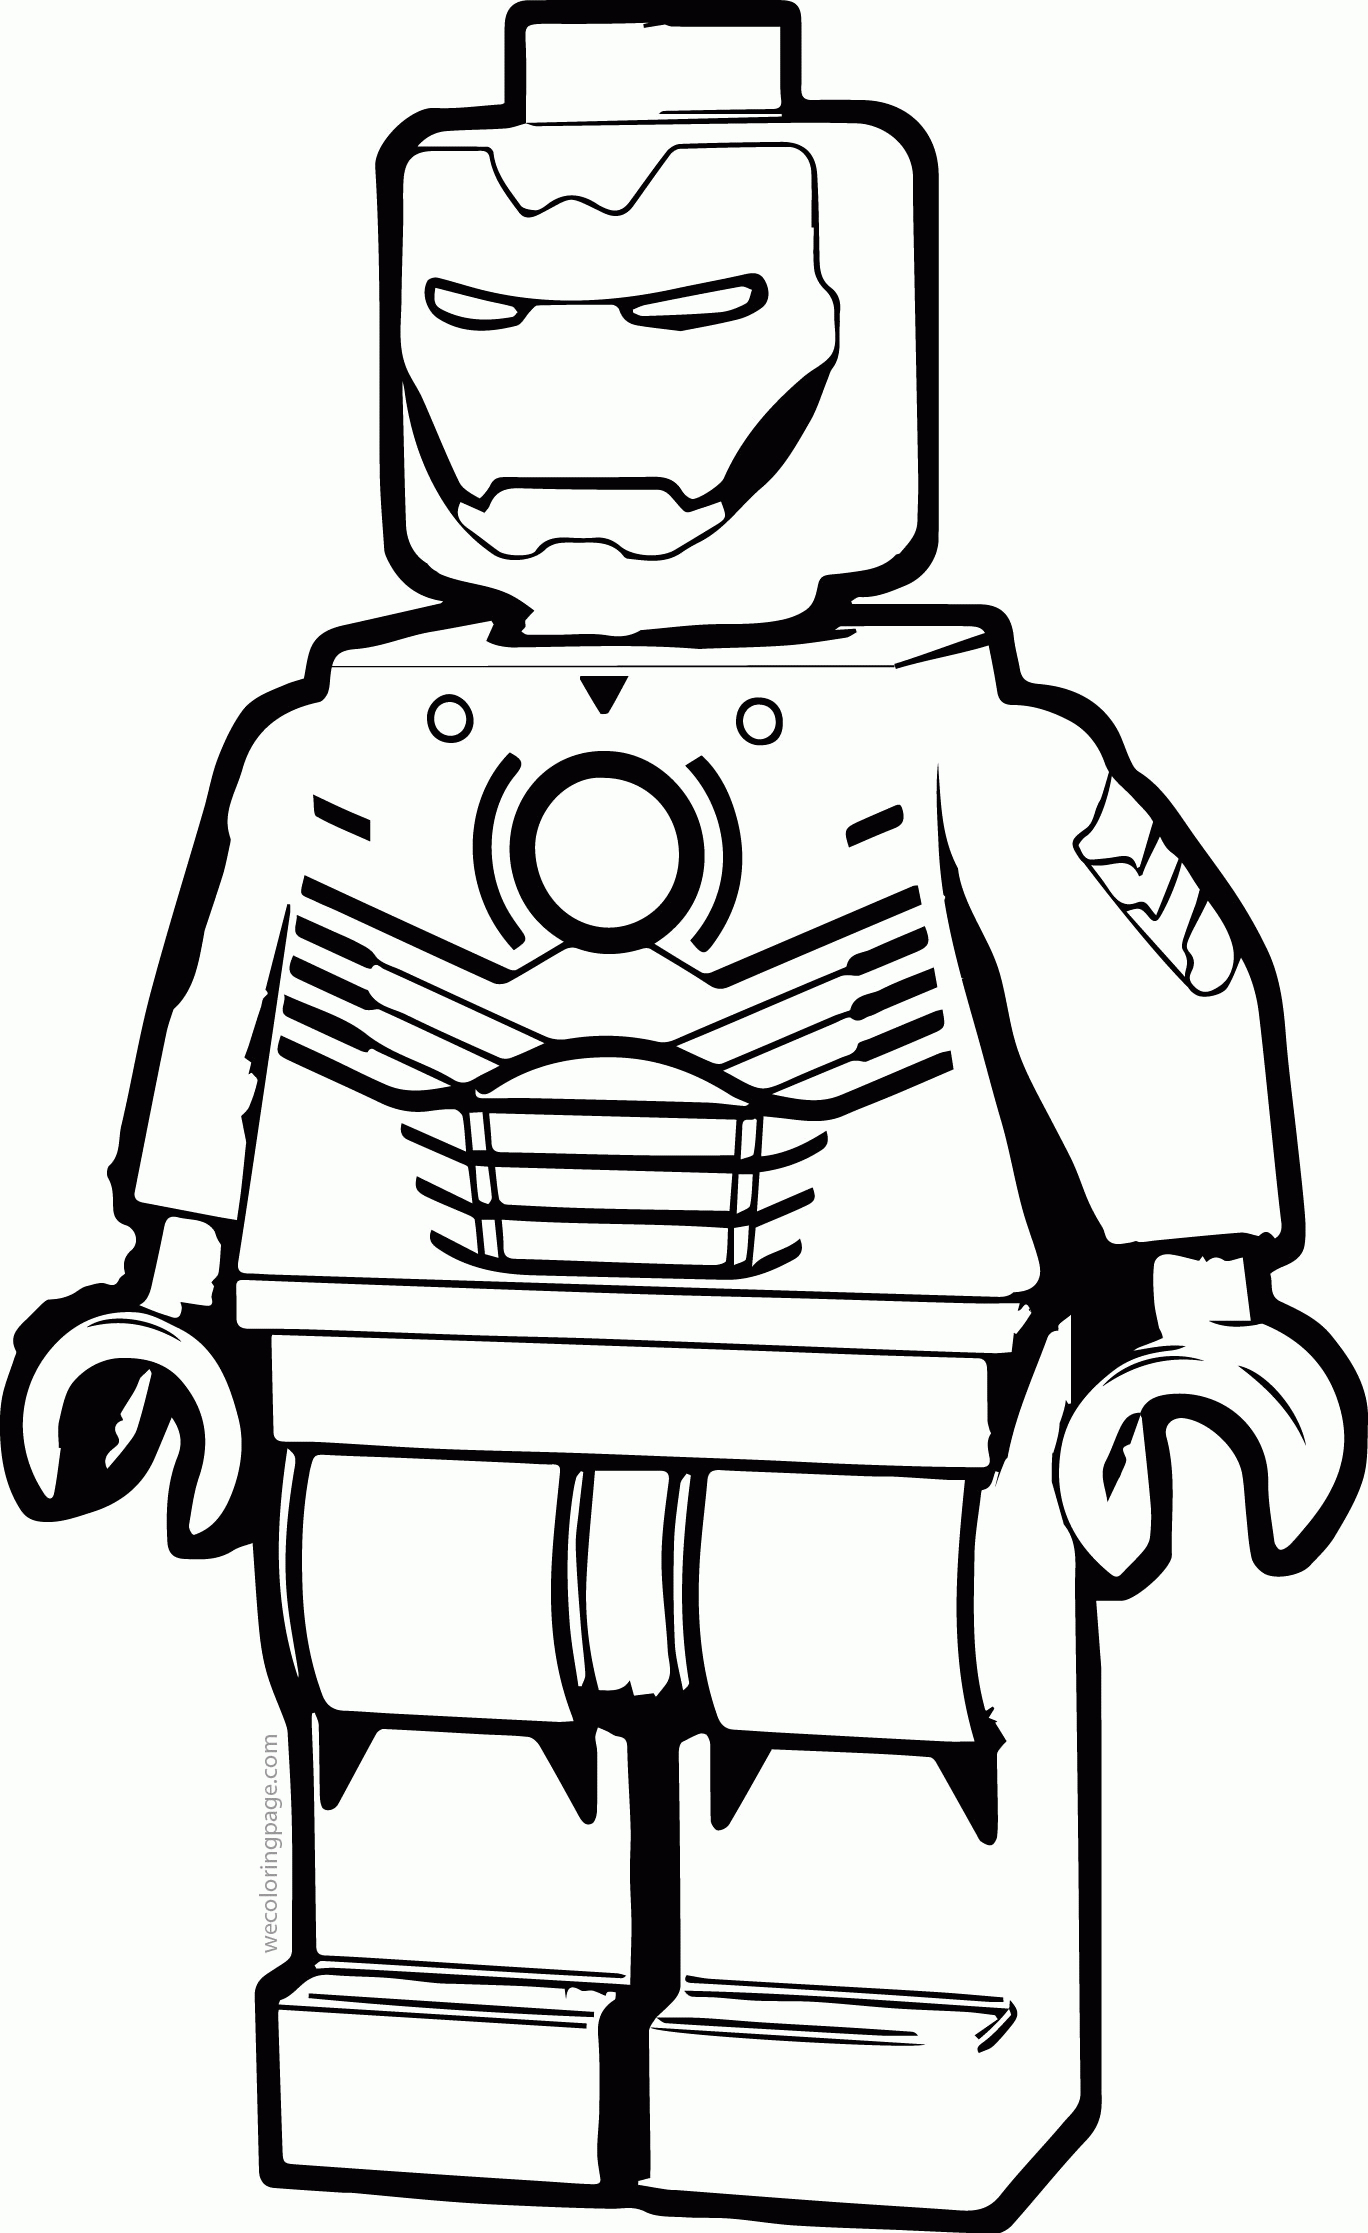 photograph relating to Lego Man Printable called Ironman Coloring Webpages Lego Gentleman Coloring Website page Ironman